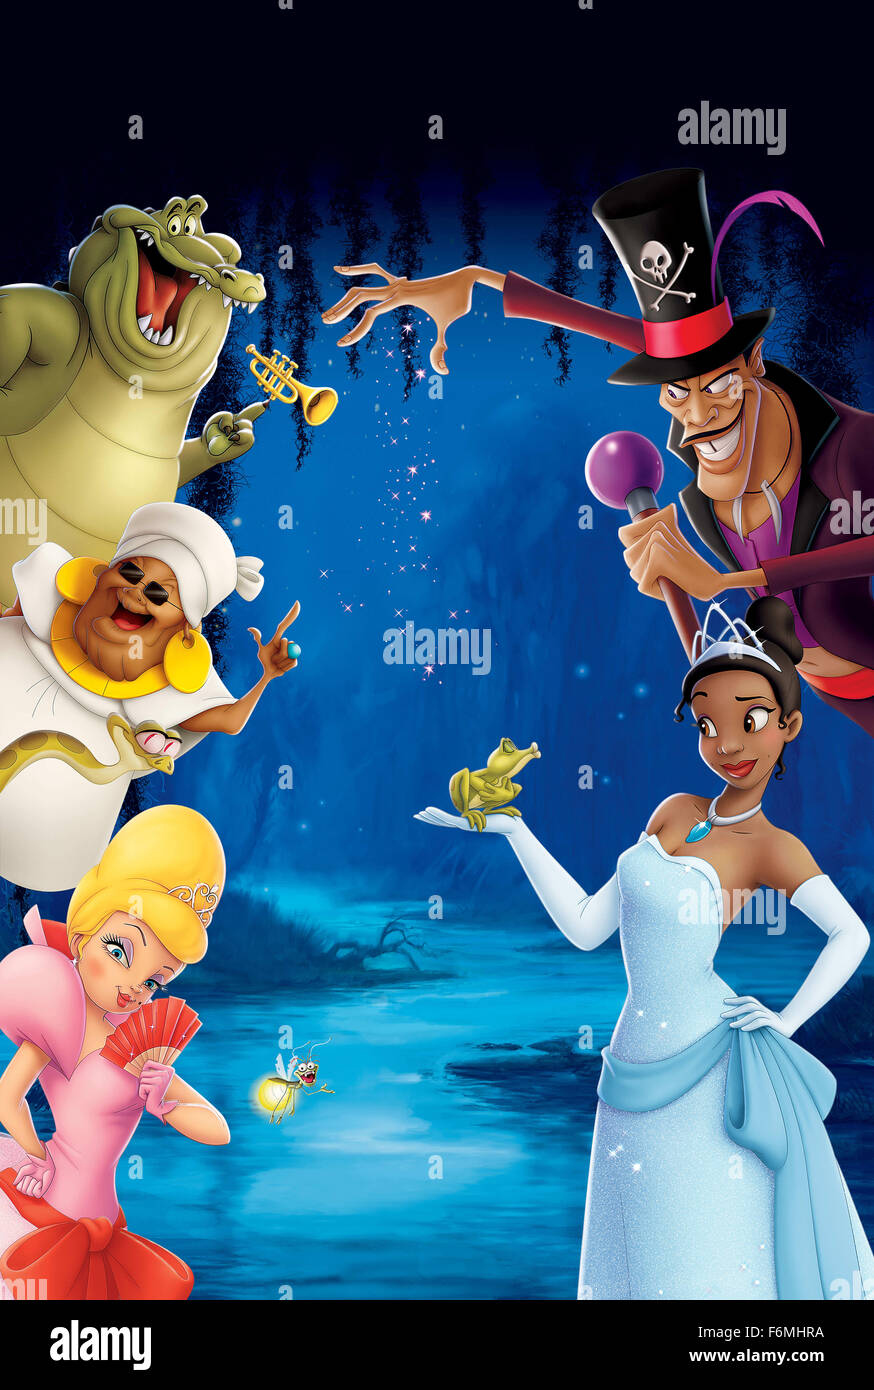 RELEASE DATE: December 11, 2009. MOVIE TITLE: The Princess ...